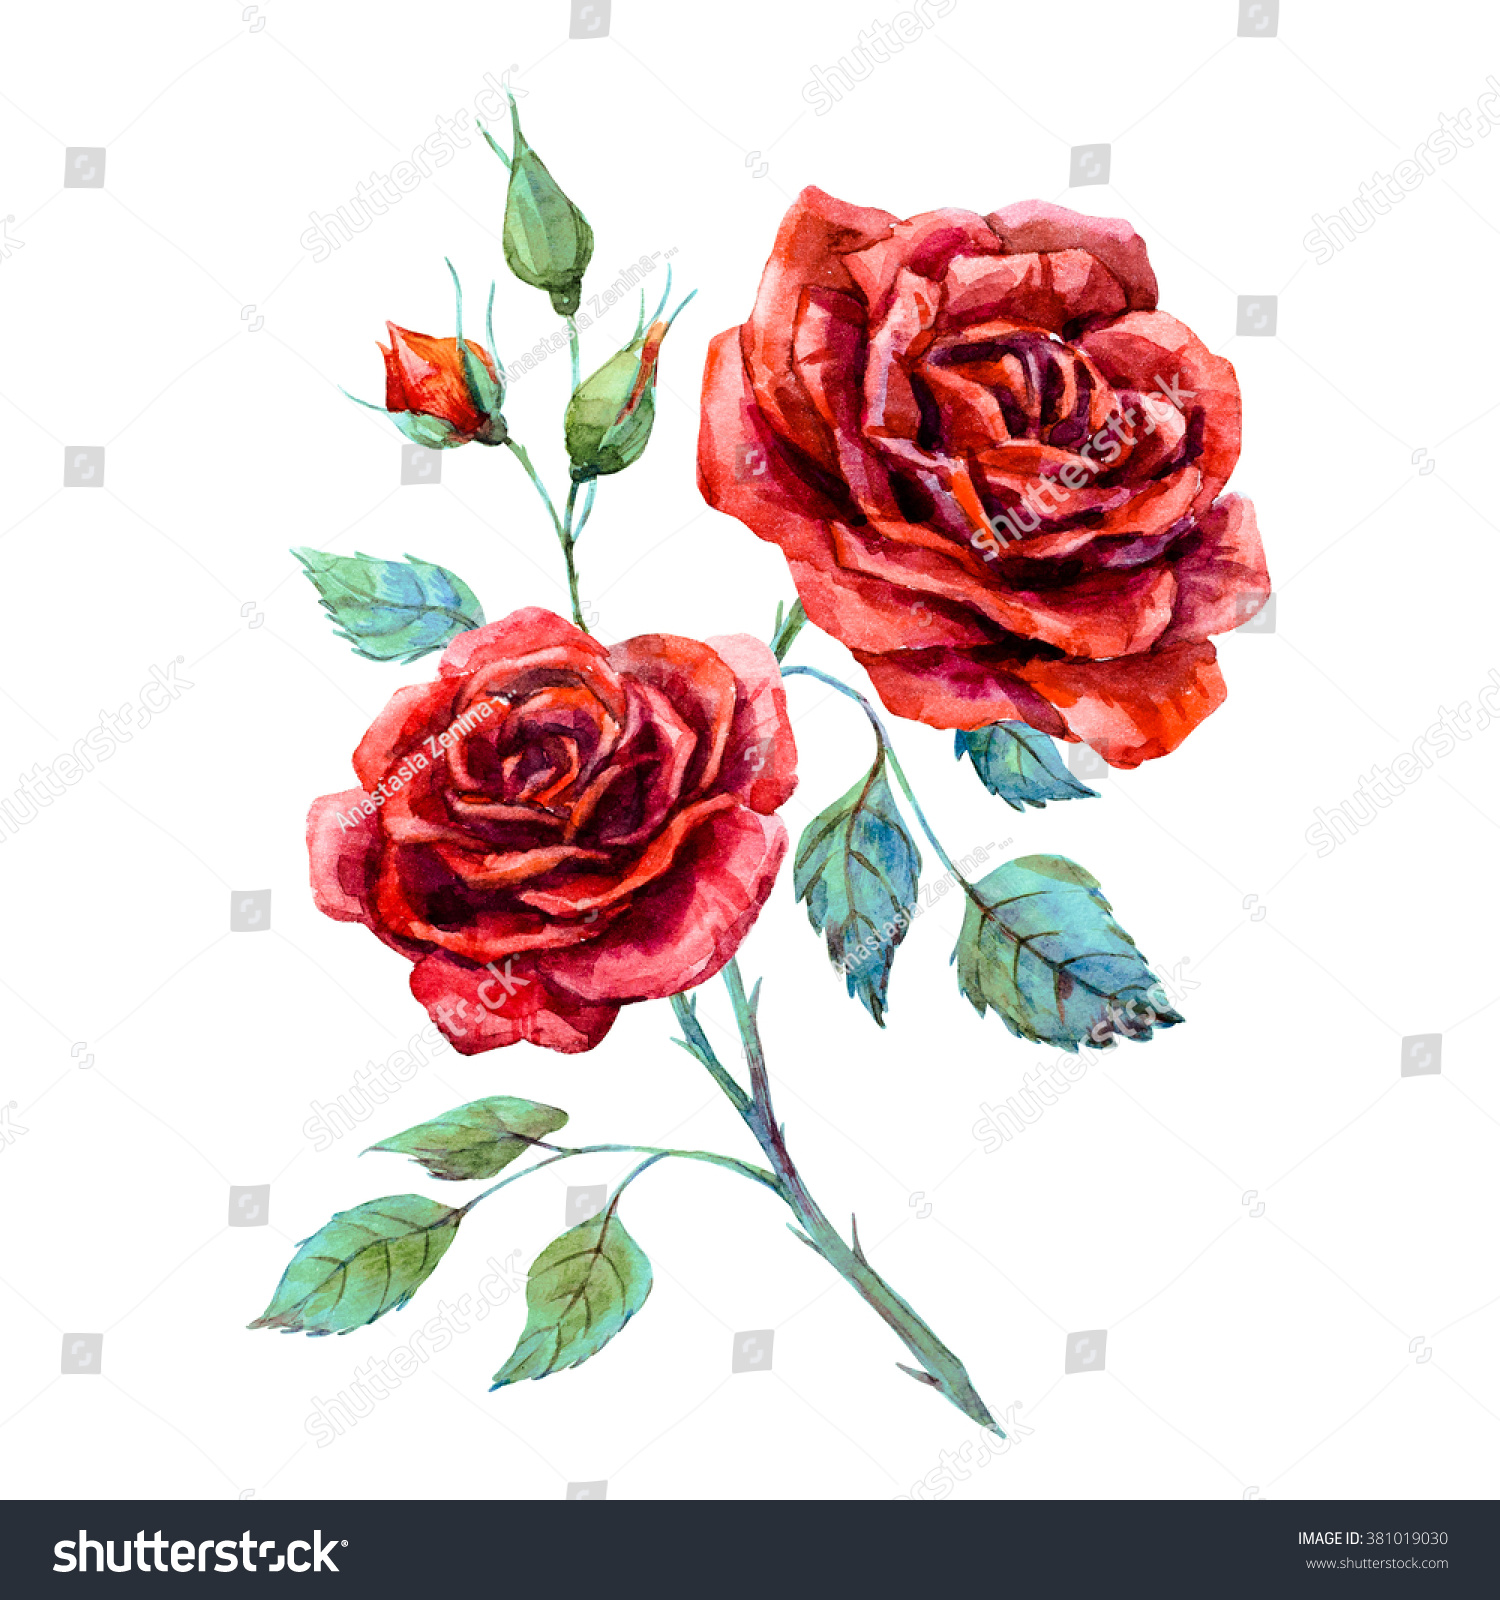 watercolor drawing red rose isolated onのイラスト素材 381019030